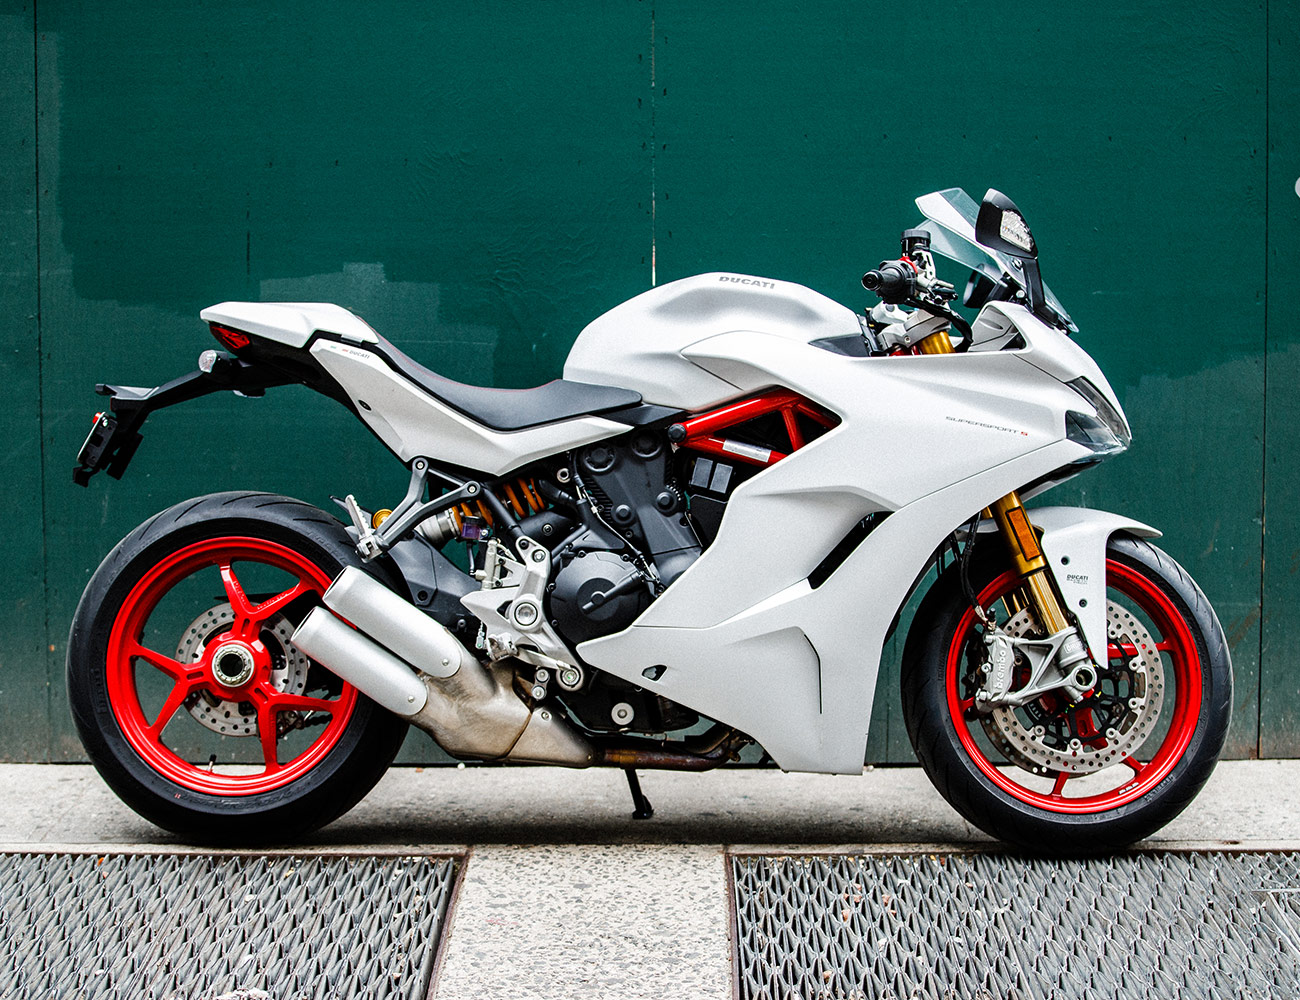 2018 ducati supersport s review a sport bike for the average rider